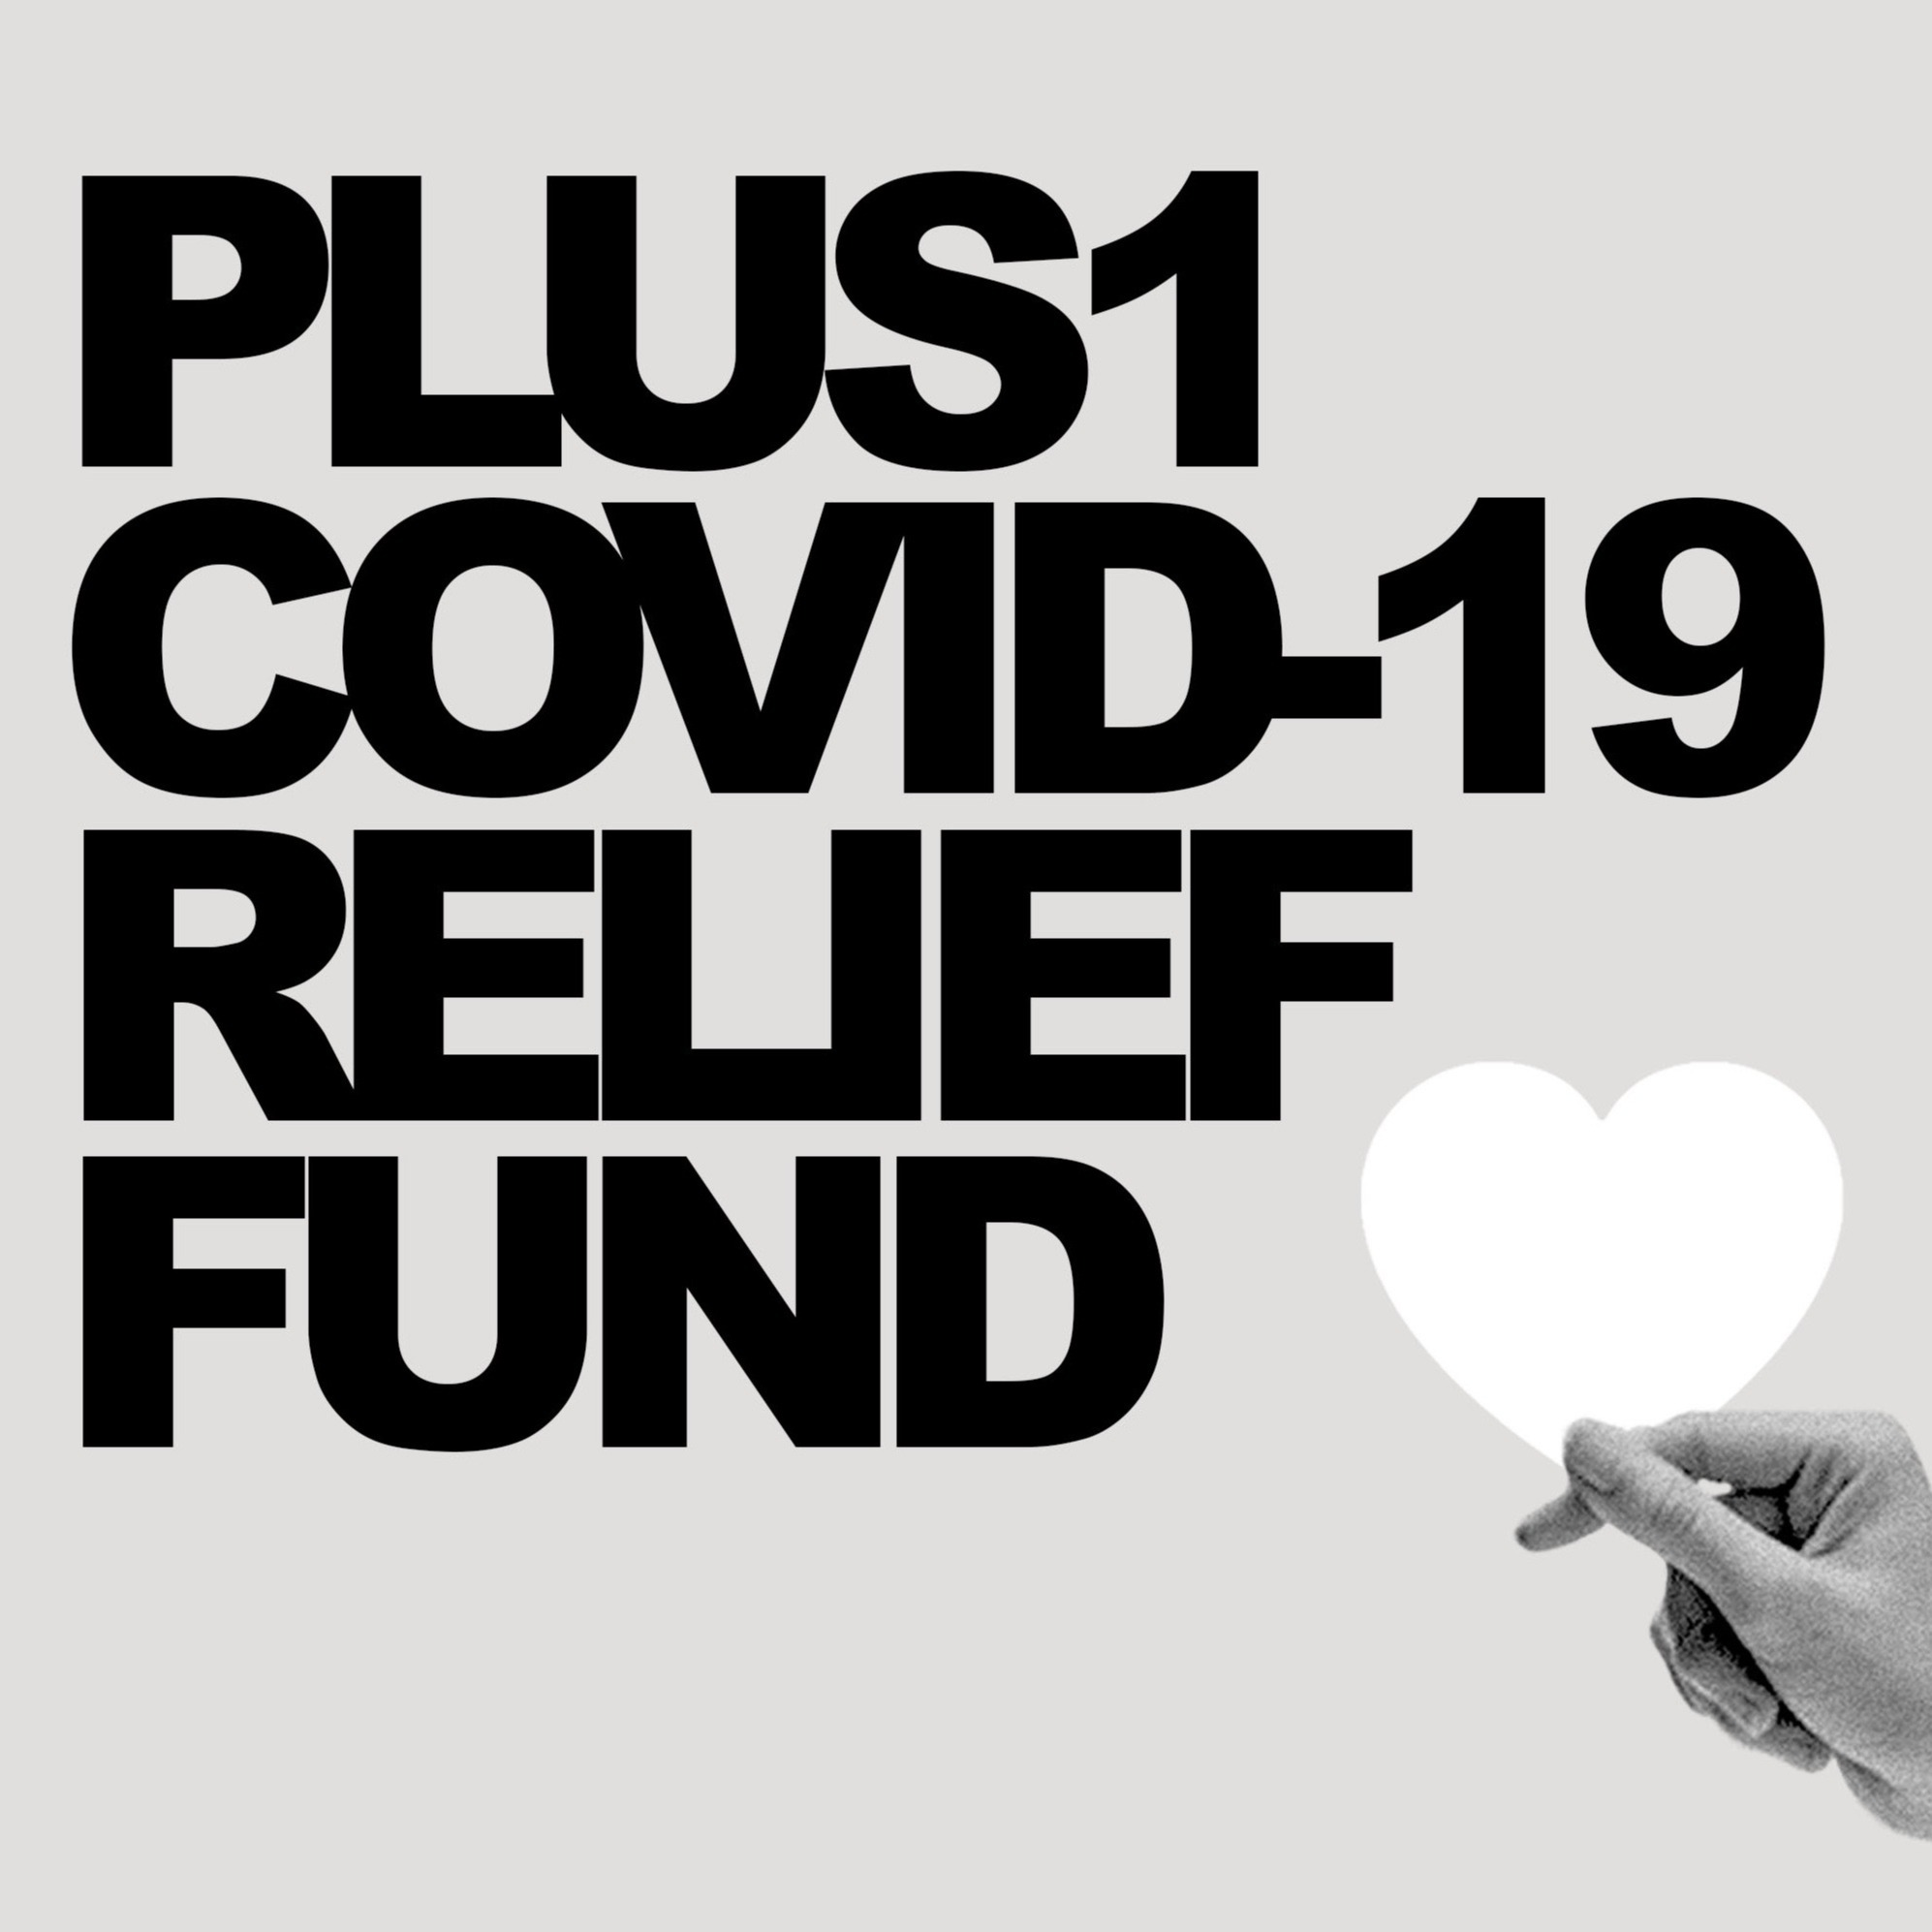 Donate to the PLUS1 COVID-19 Relief Fund